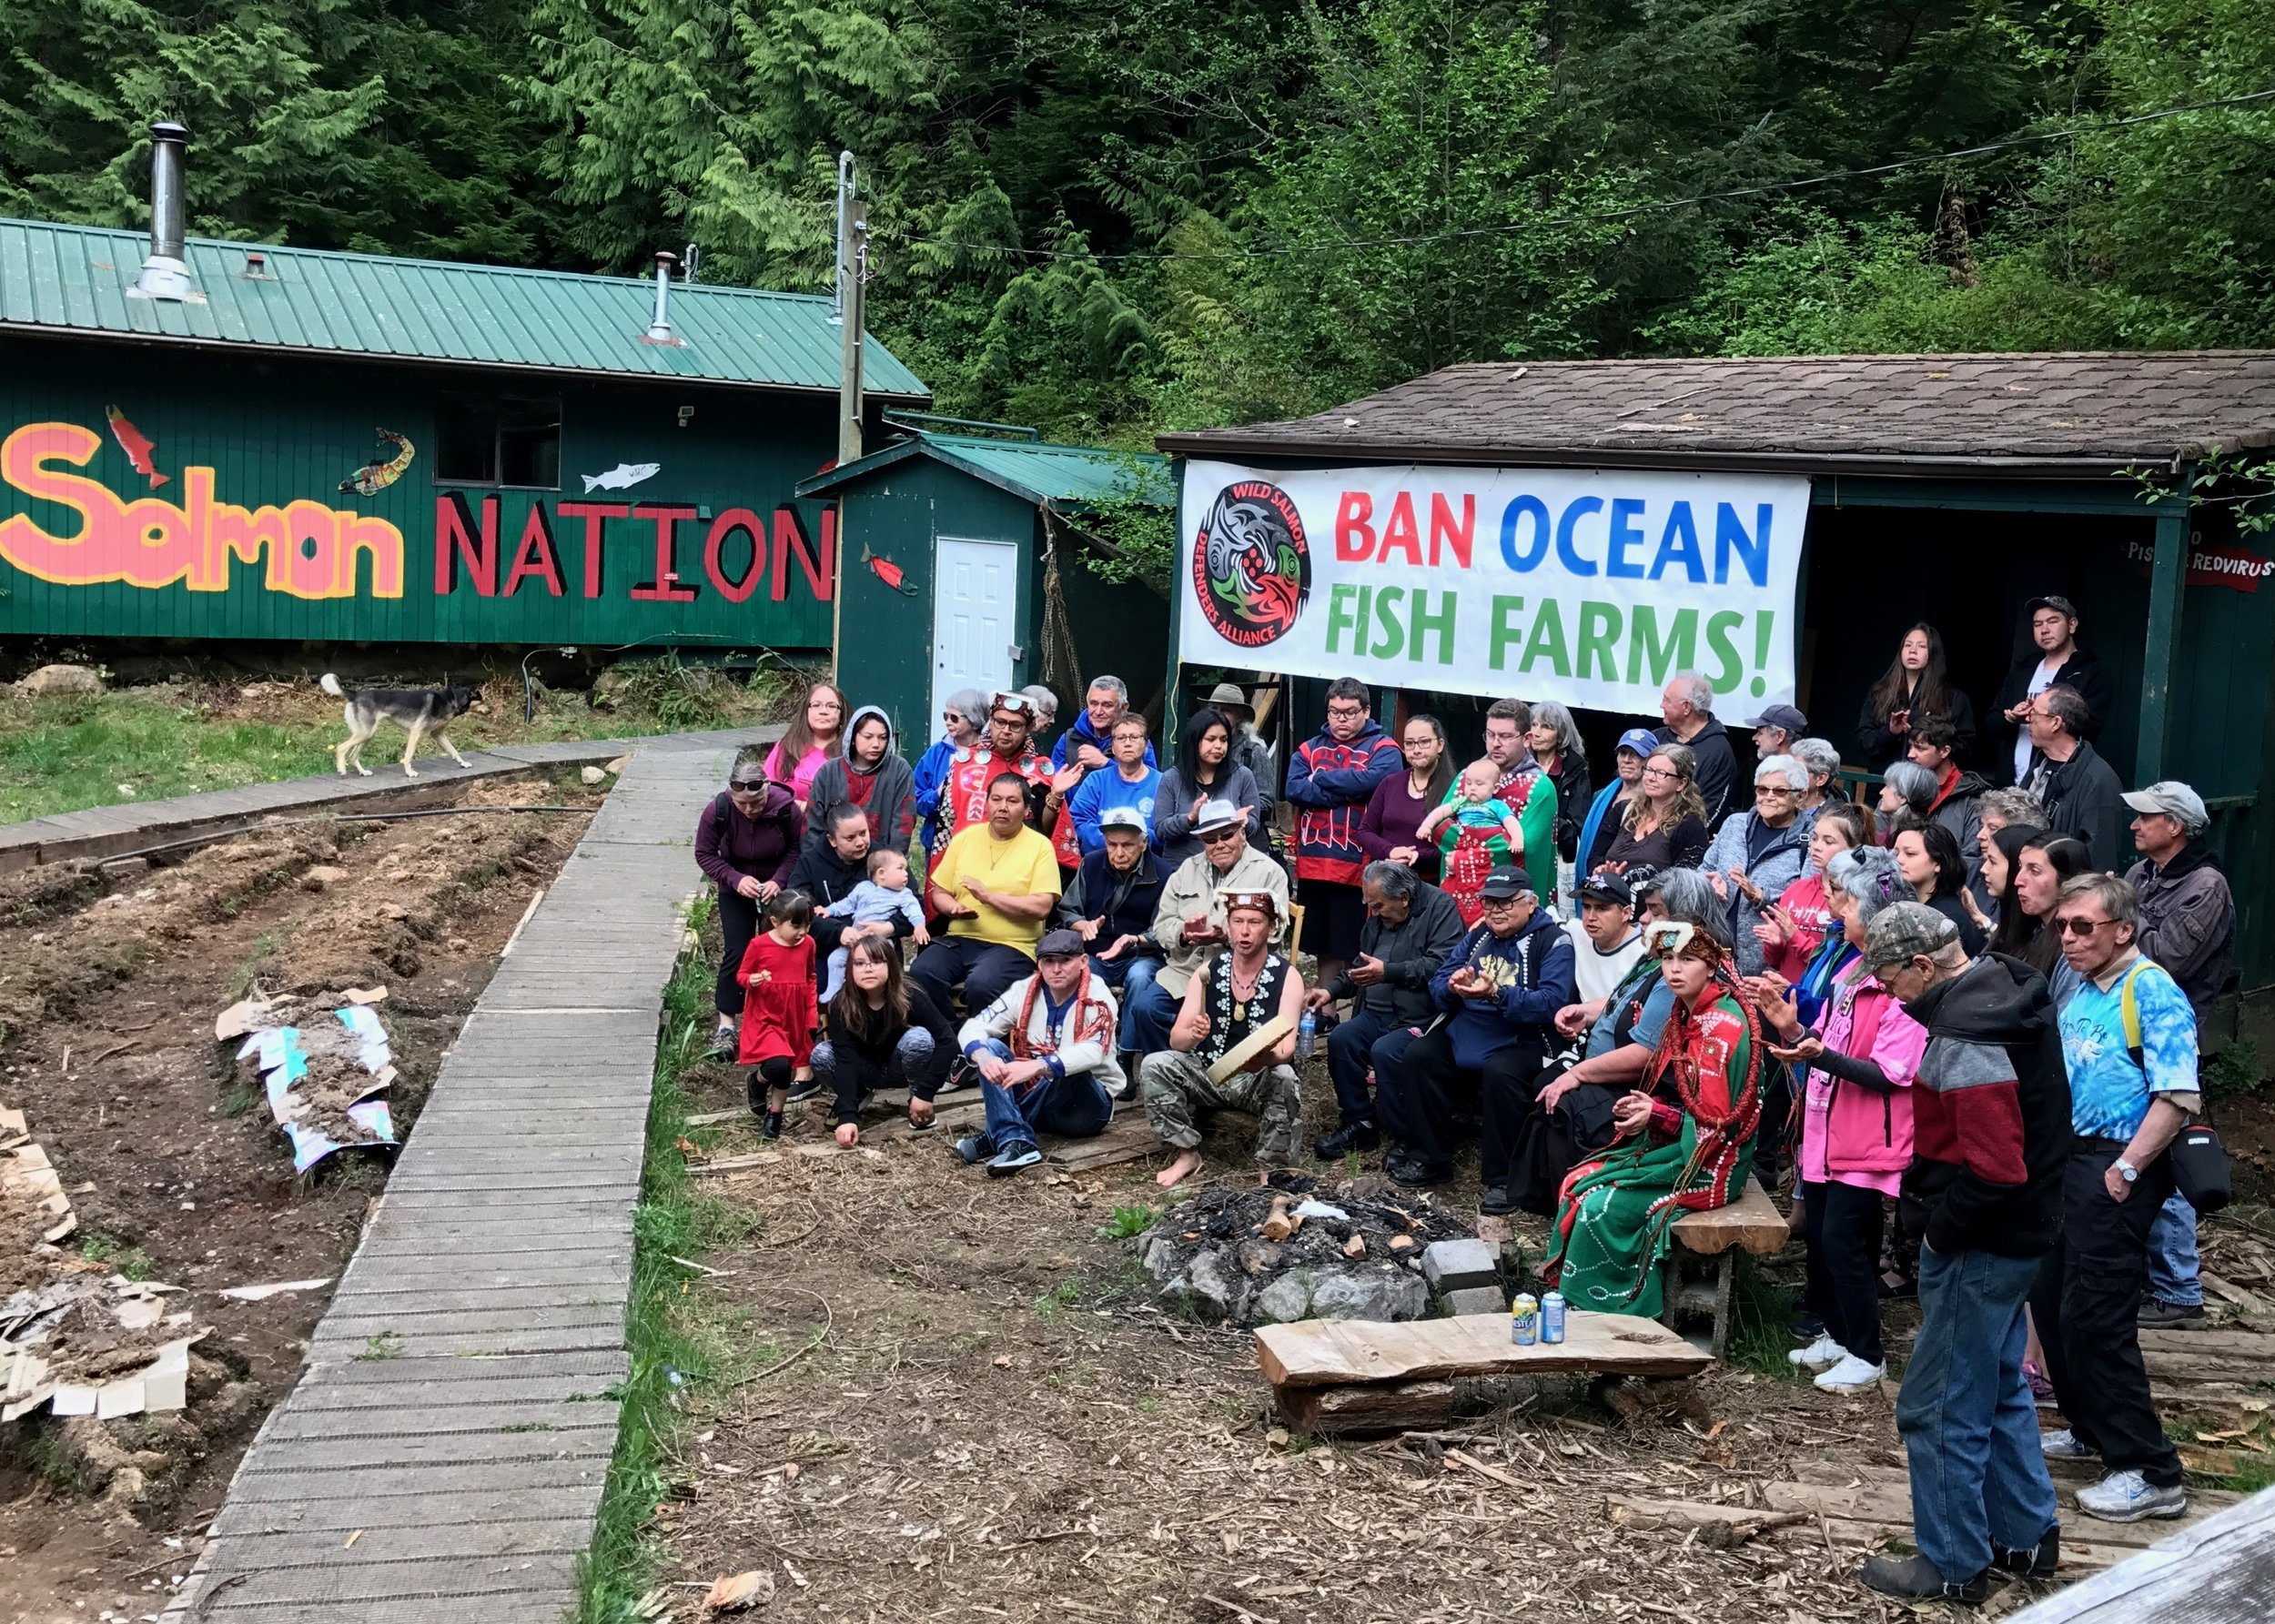 'Namgis First Nation Protest at Swanson Island Fish Farm. Photo: M. Reppy